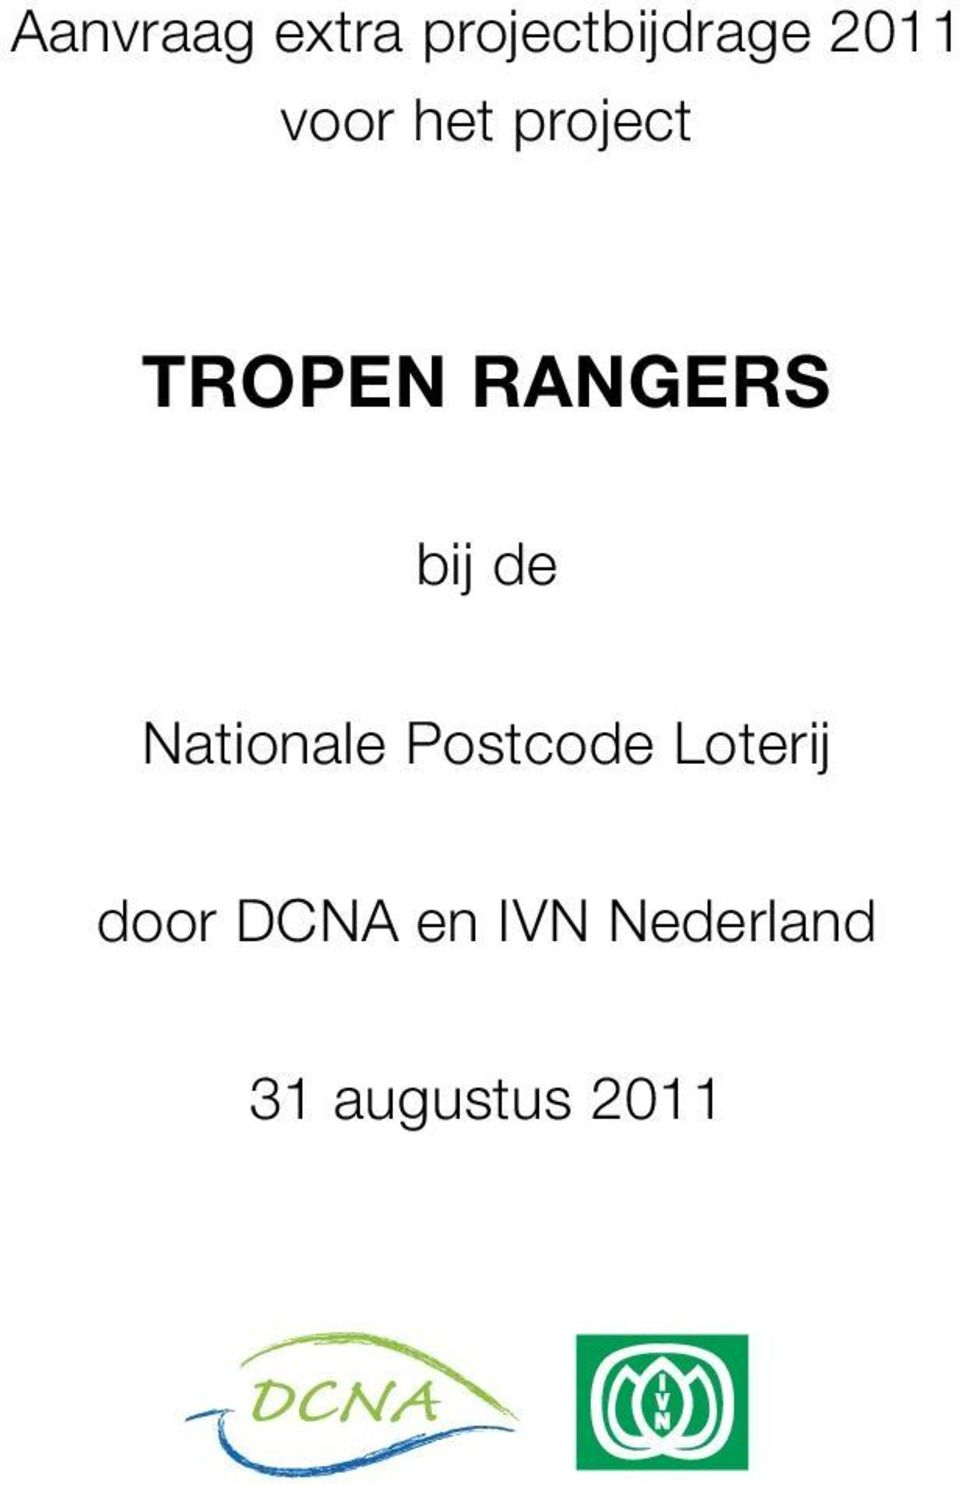 de Nationale Postcode Loterij door